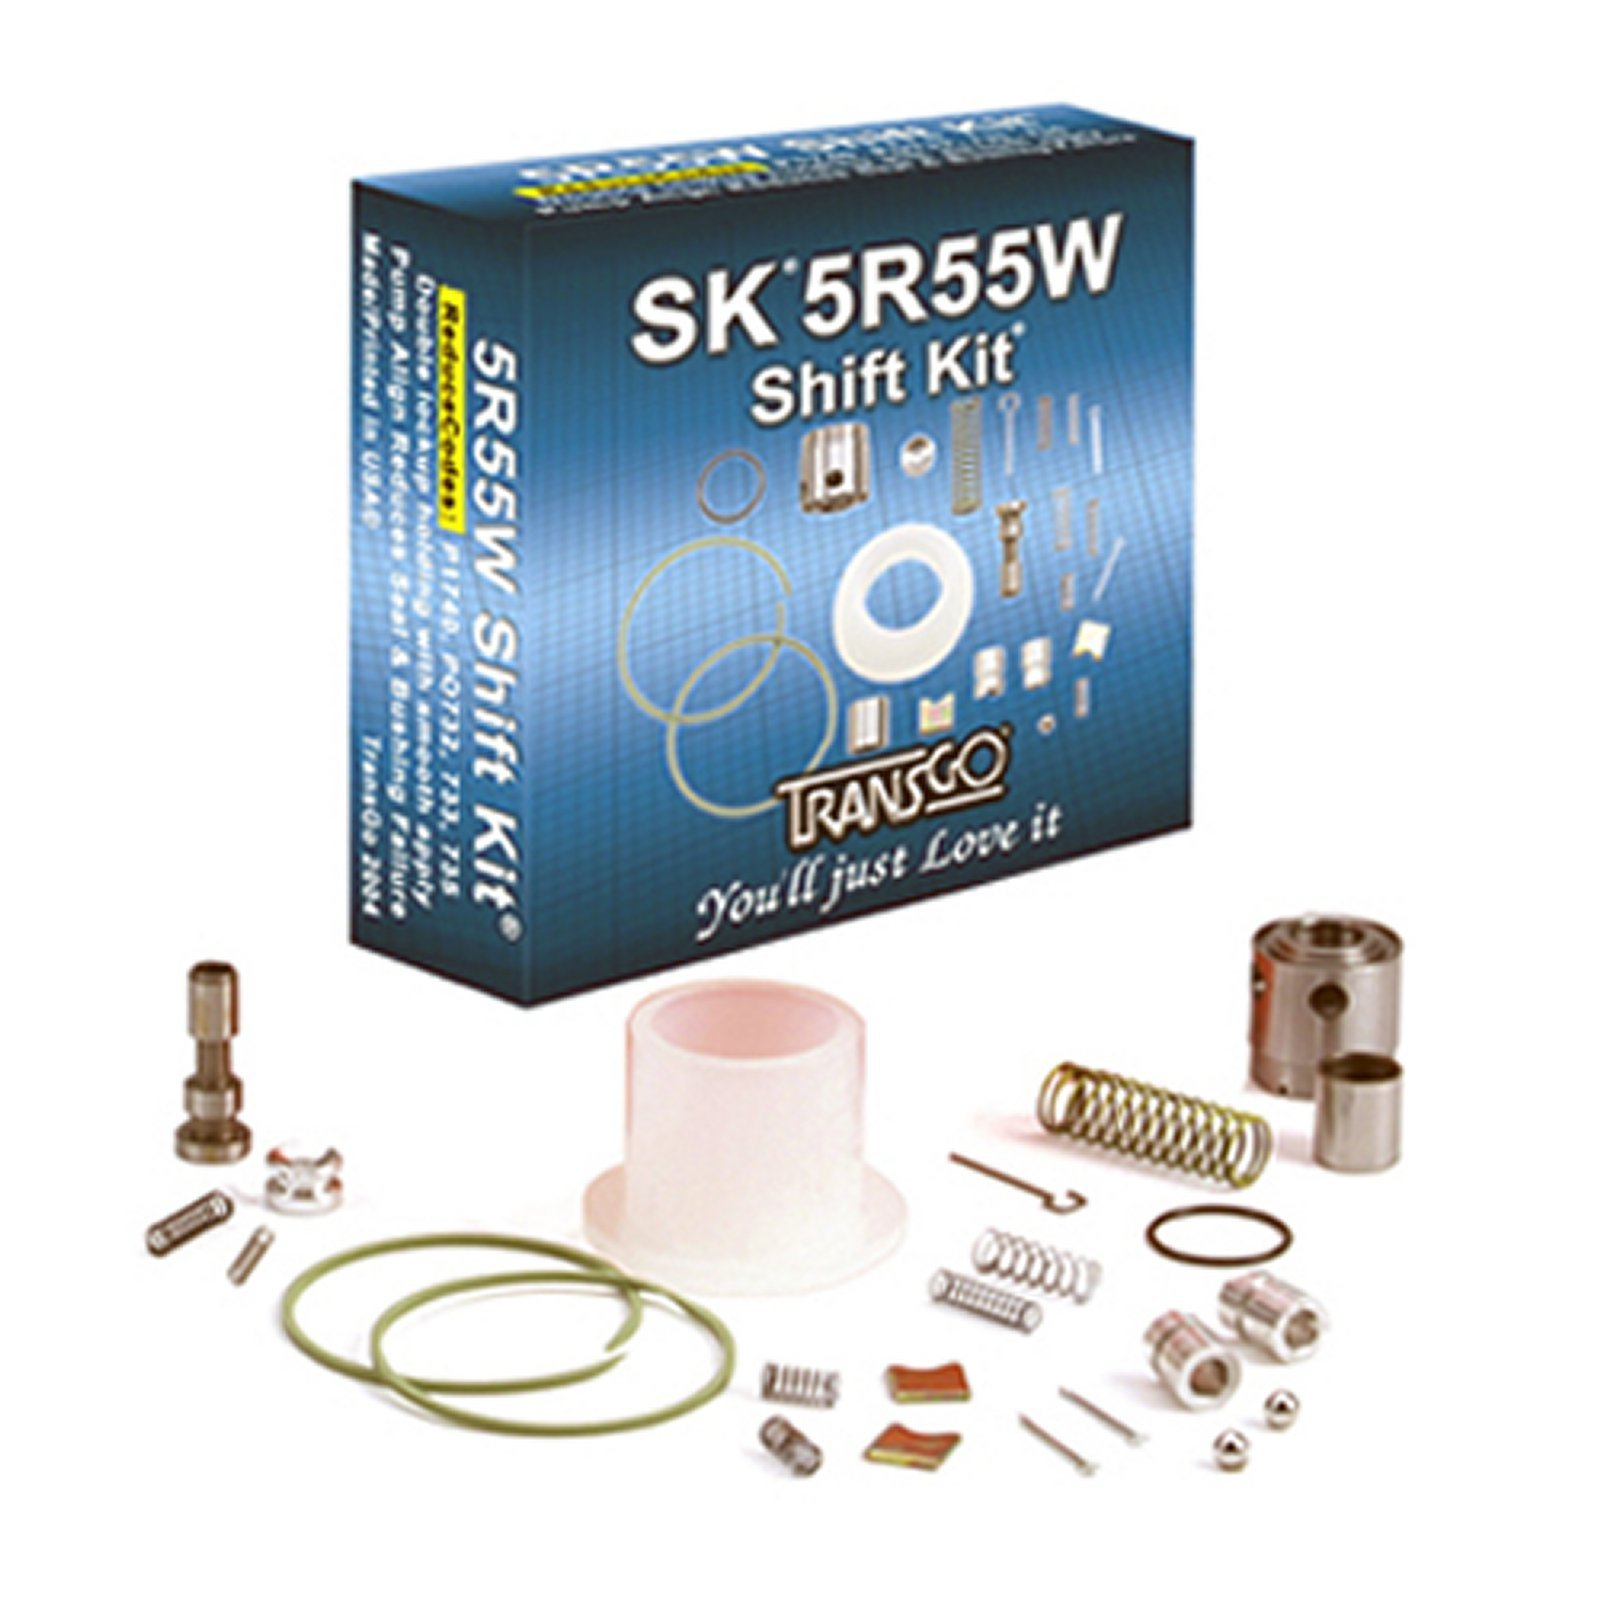 5R55W TRANSGO Shift Kit Valve Body Rebuild Kit